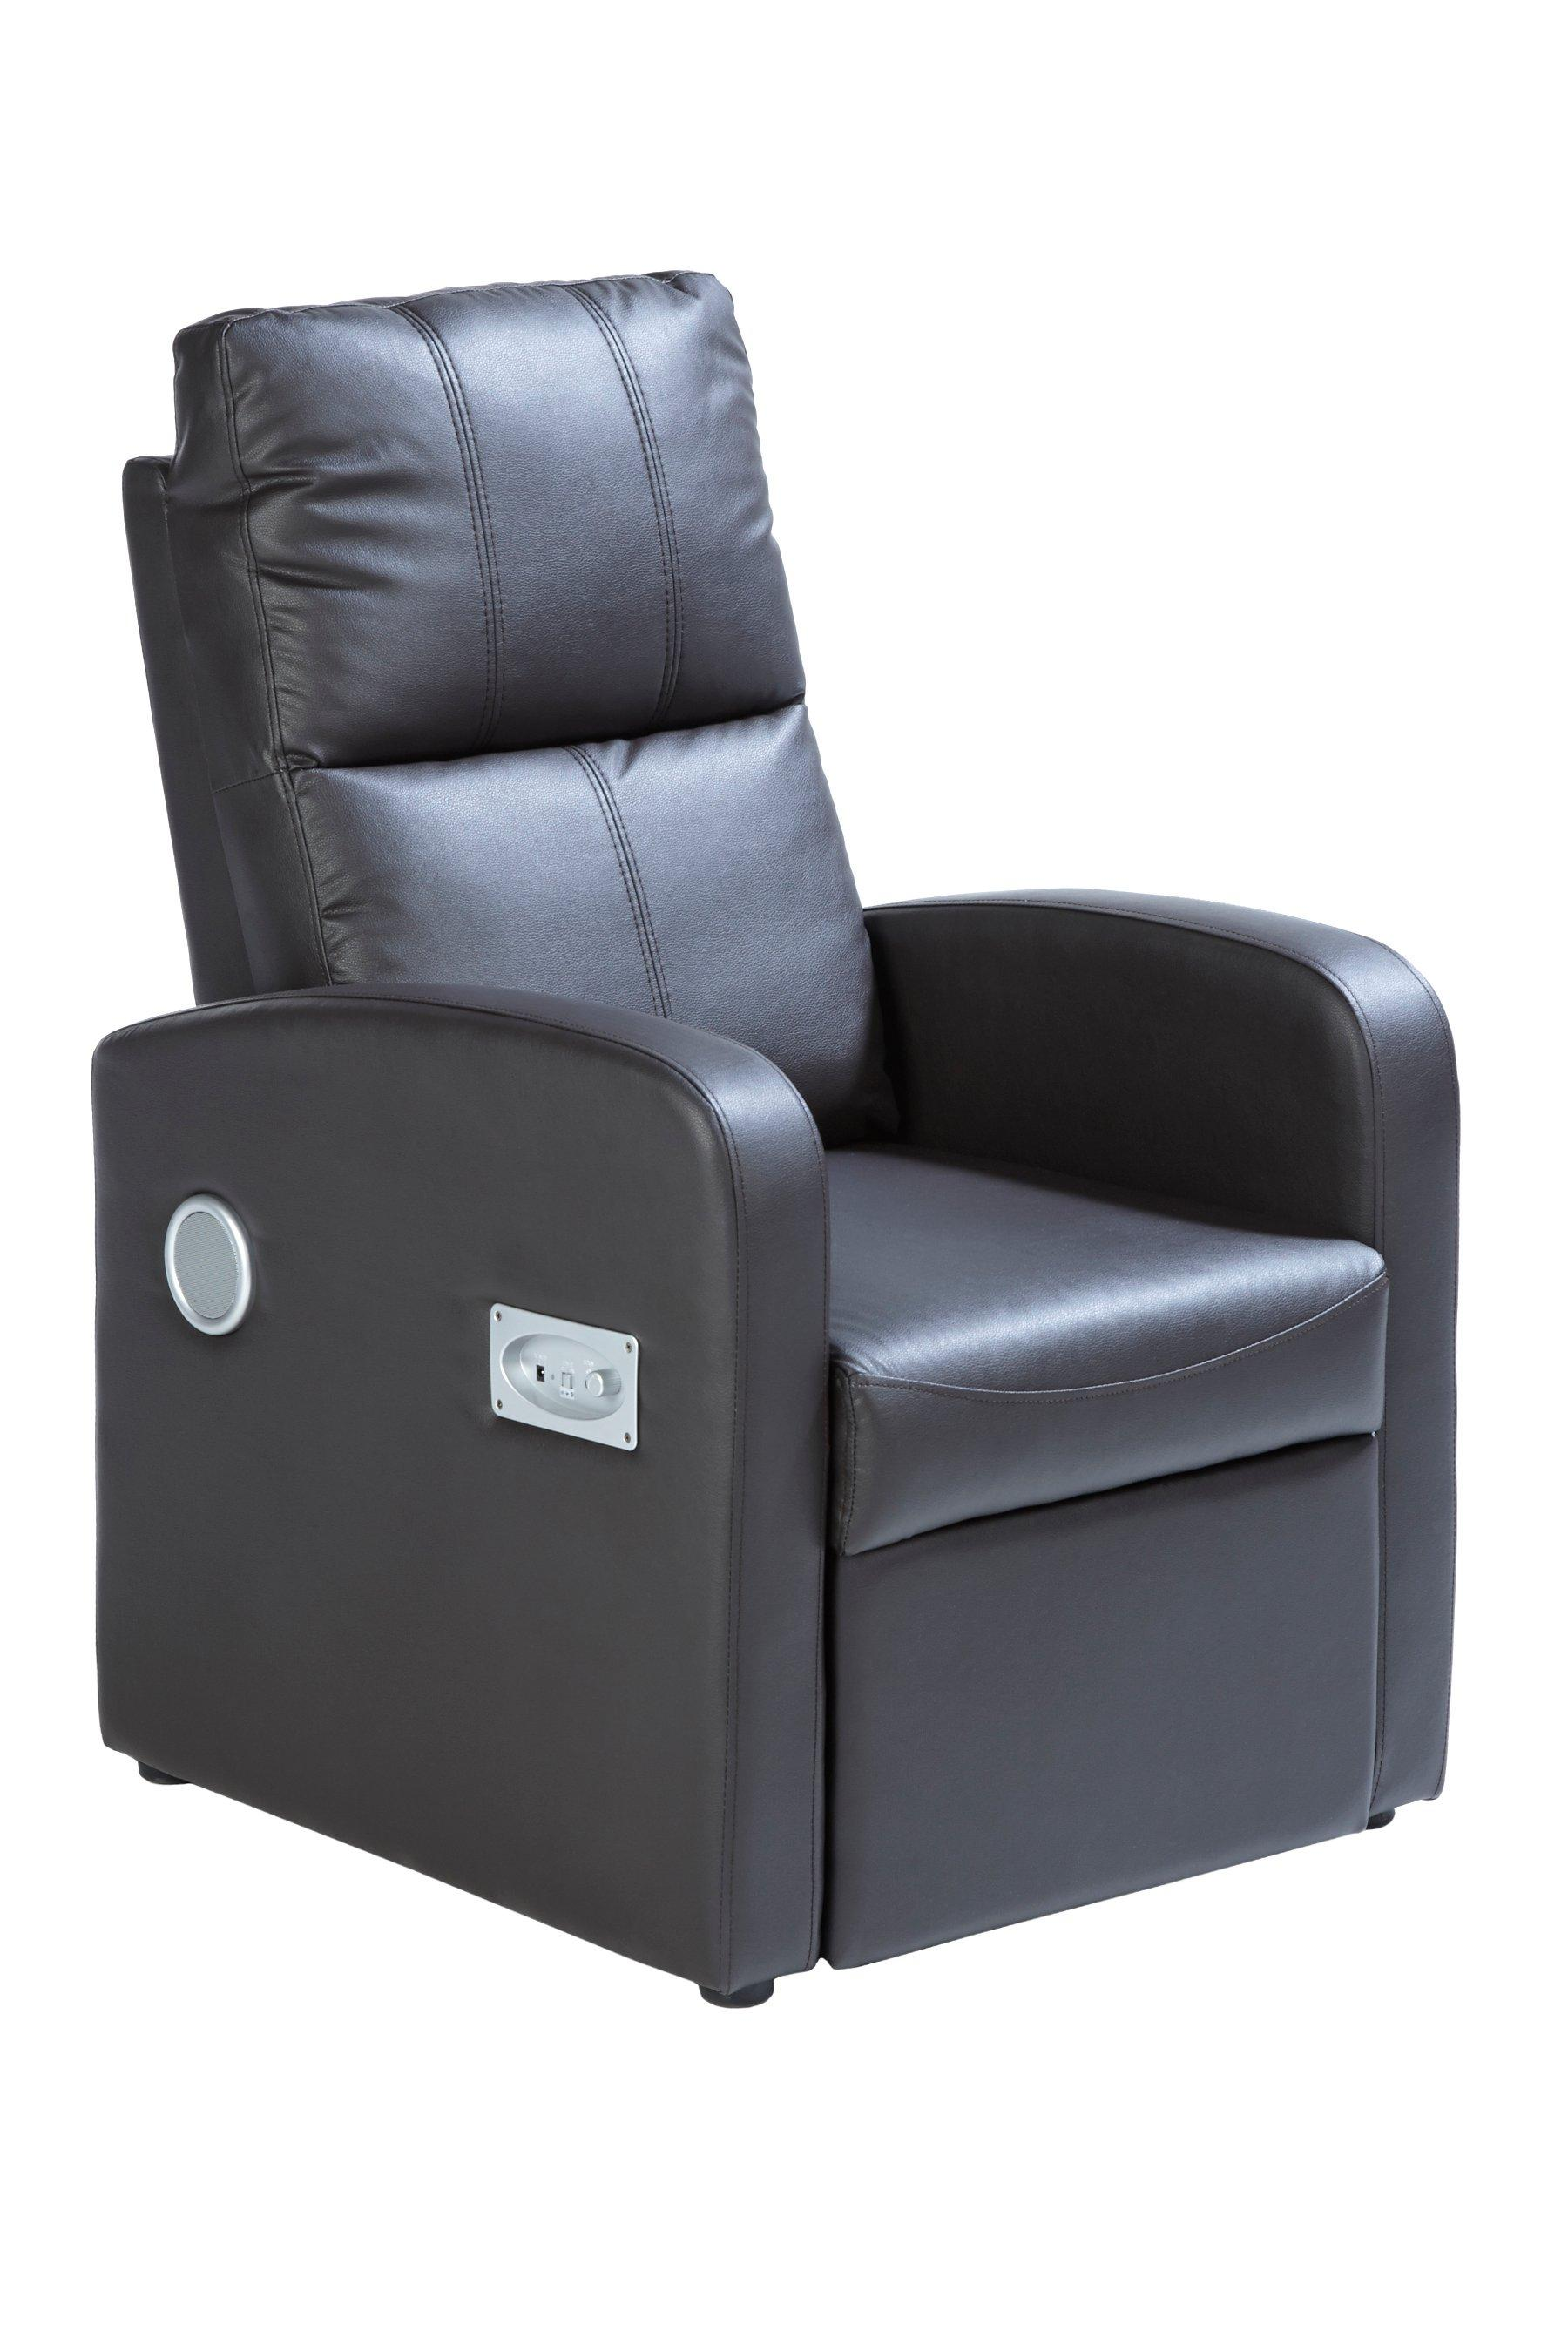 chair with speakers zimmer frame wheelchair faux leather pushback black brown recliner